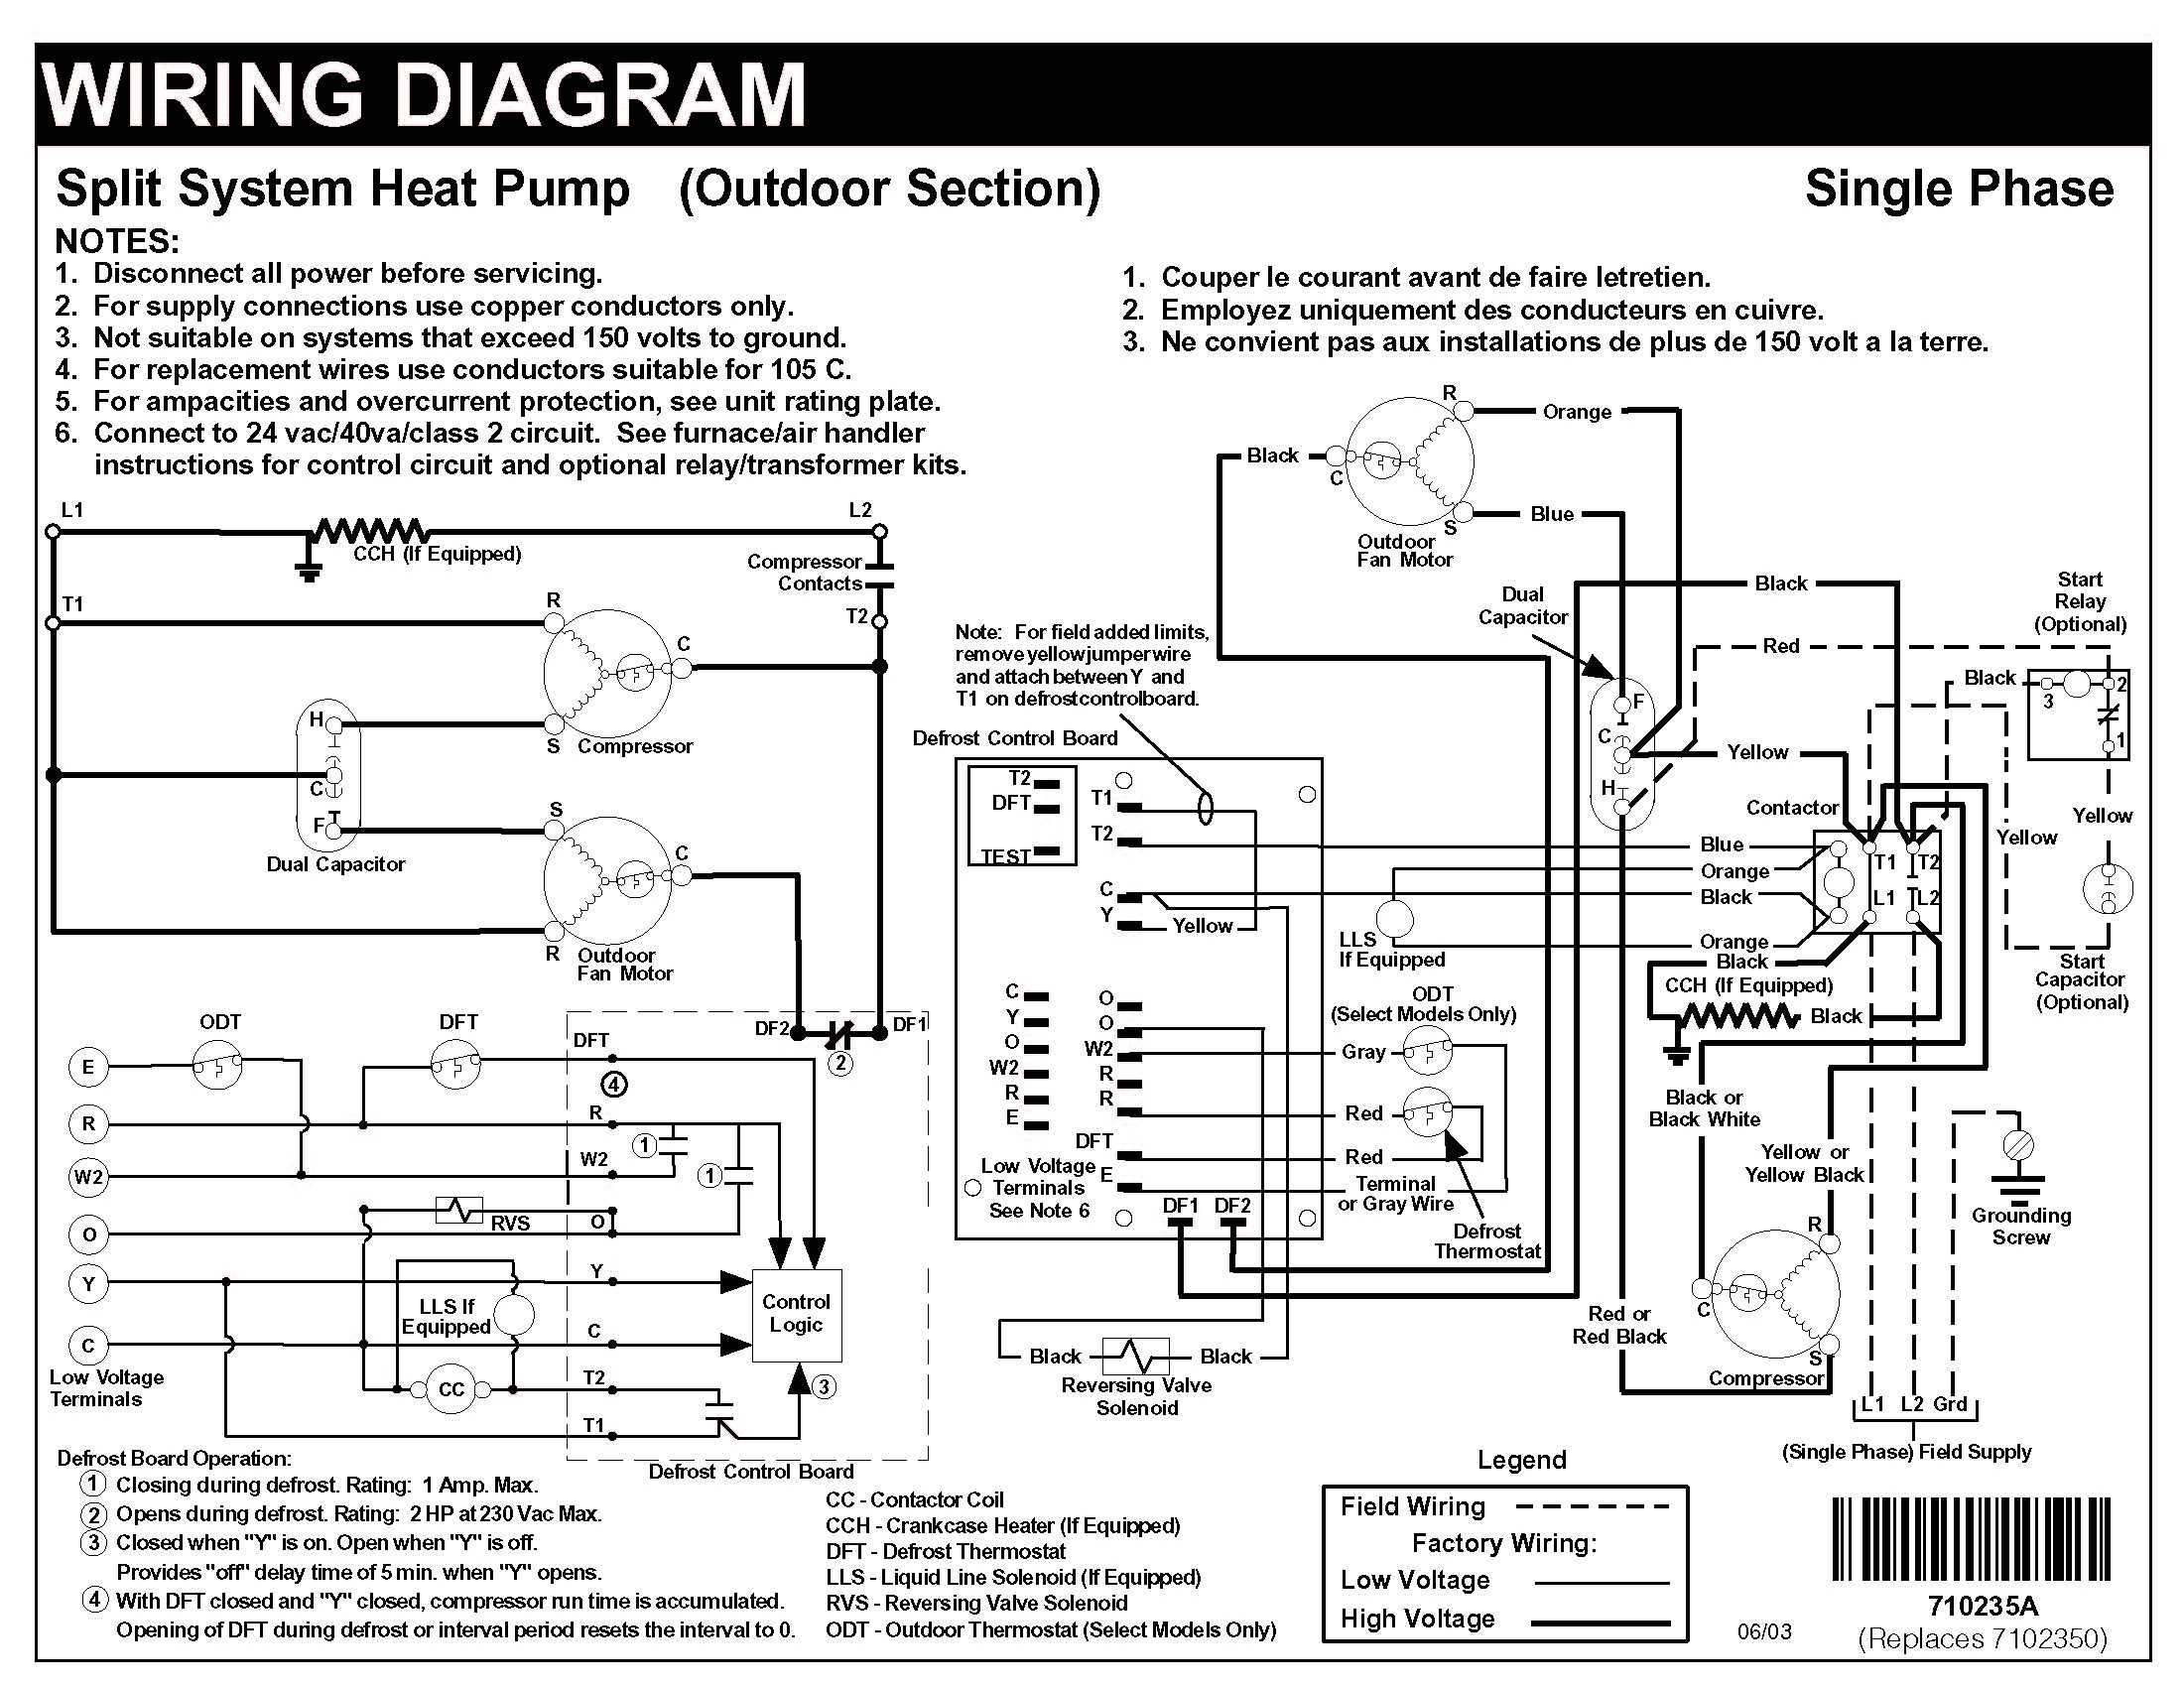 wiring diagram for hvac unit ruud heat pump thermostat wiring diagram | free wiring diagram